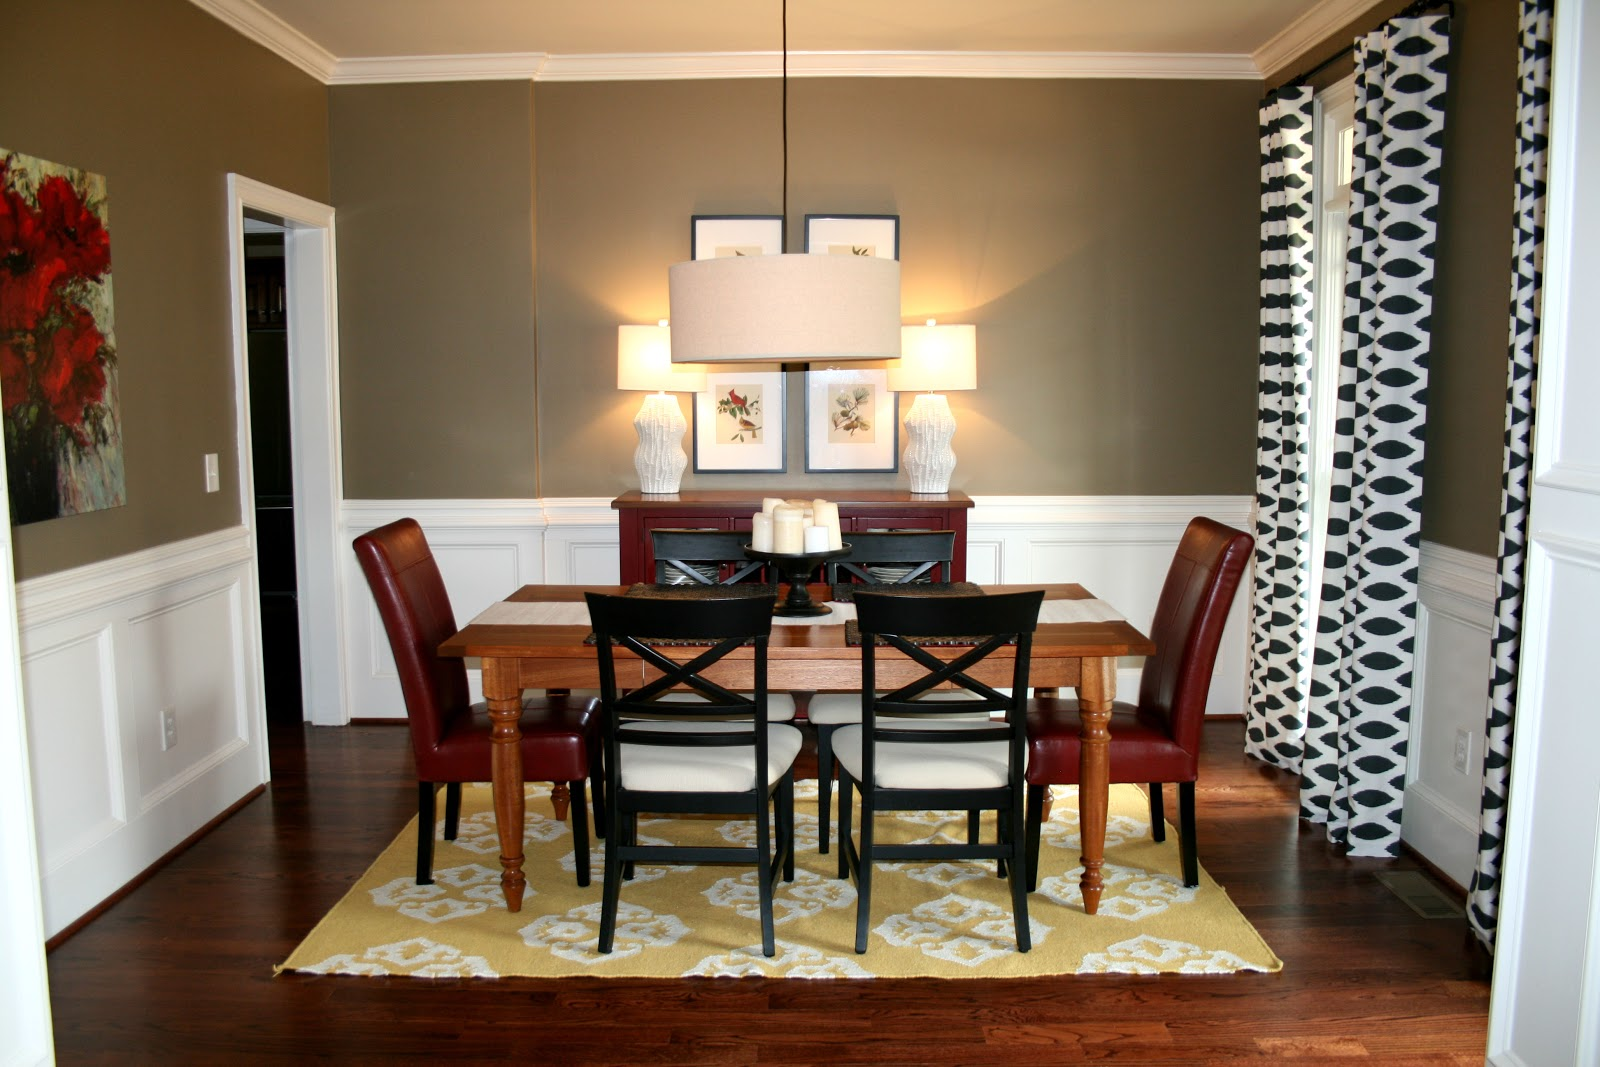 Off White Dining Chair Covers John Vogel The Bozeman Bungalow: Room Updates